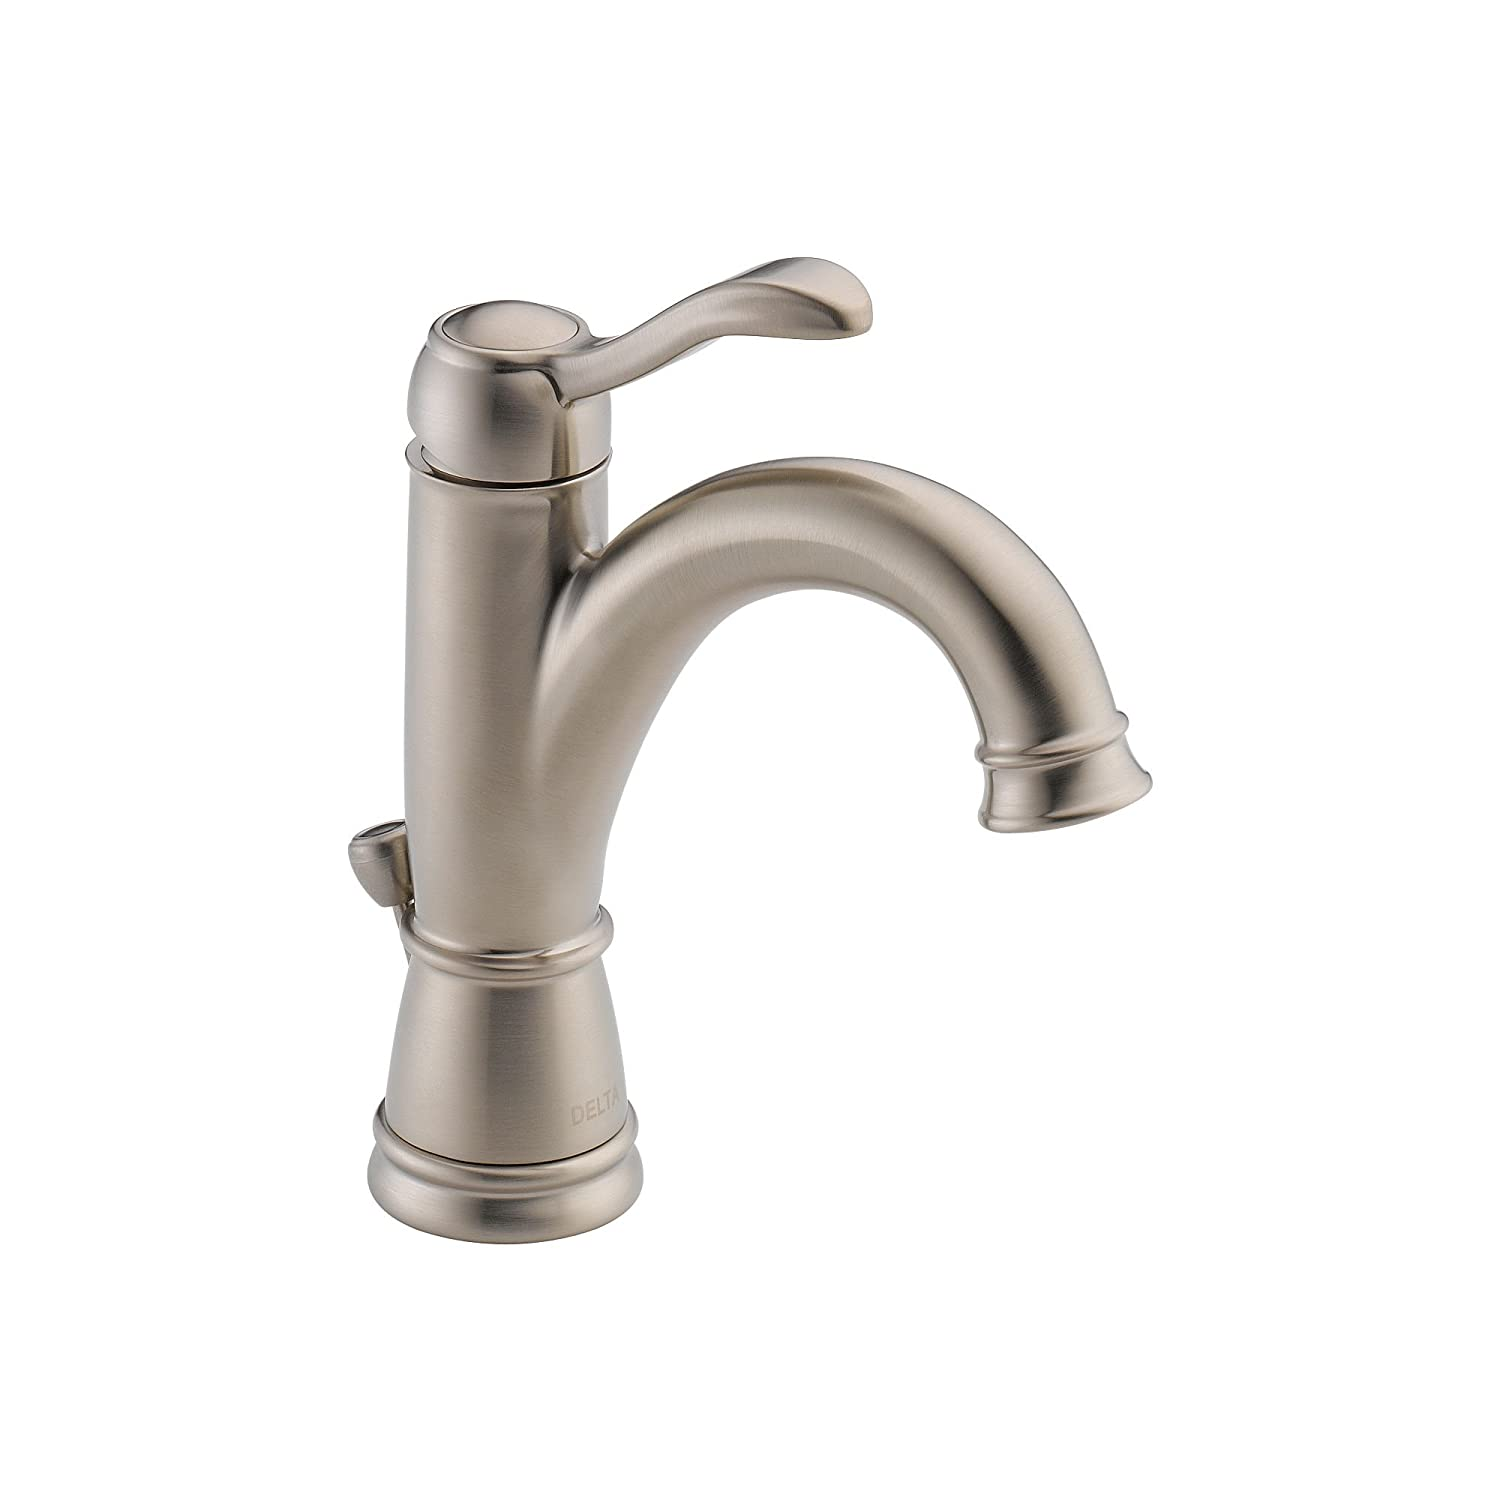 polished sink artifacts com kohler handle bathroom vibrant single k sn faucet nickel dp faucets amazon